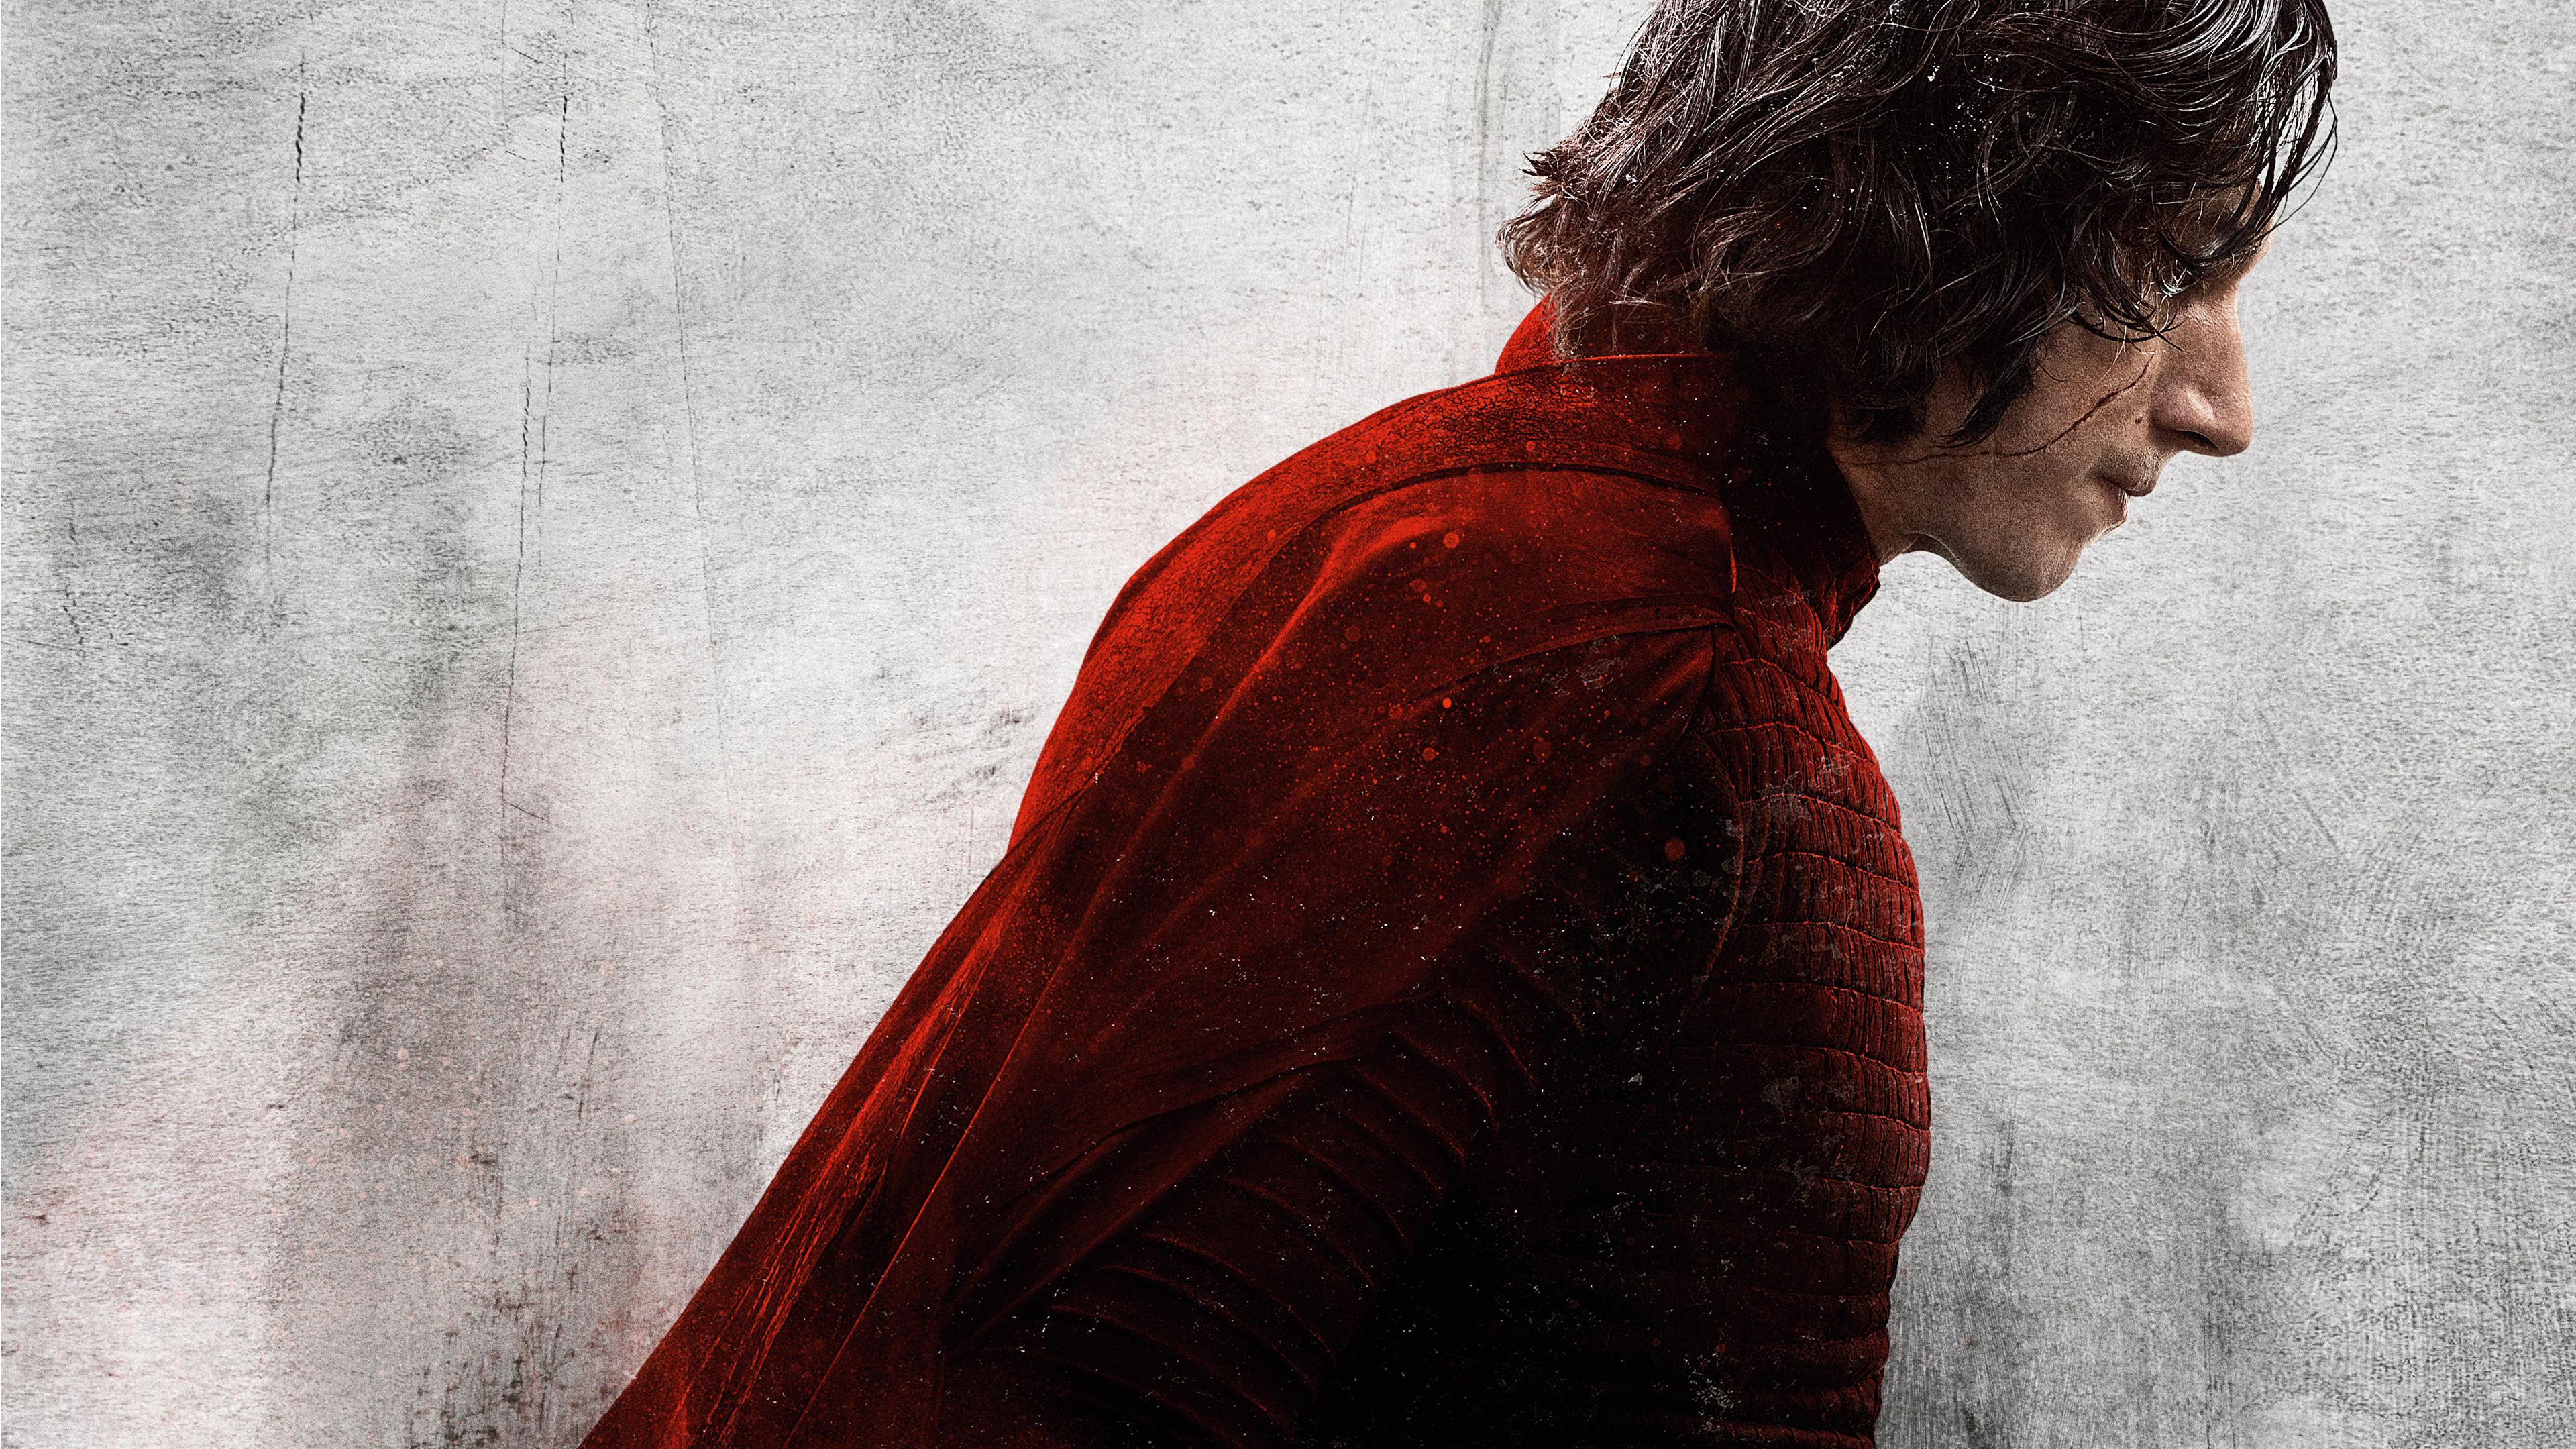 10 Hd Star Wars The Last Jedi Wallpapers